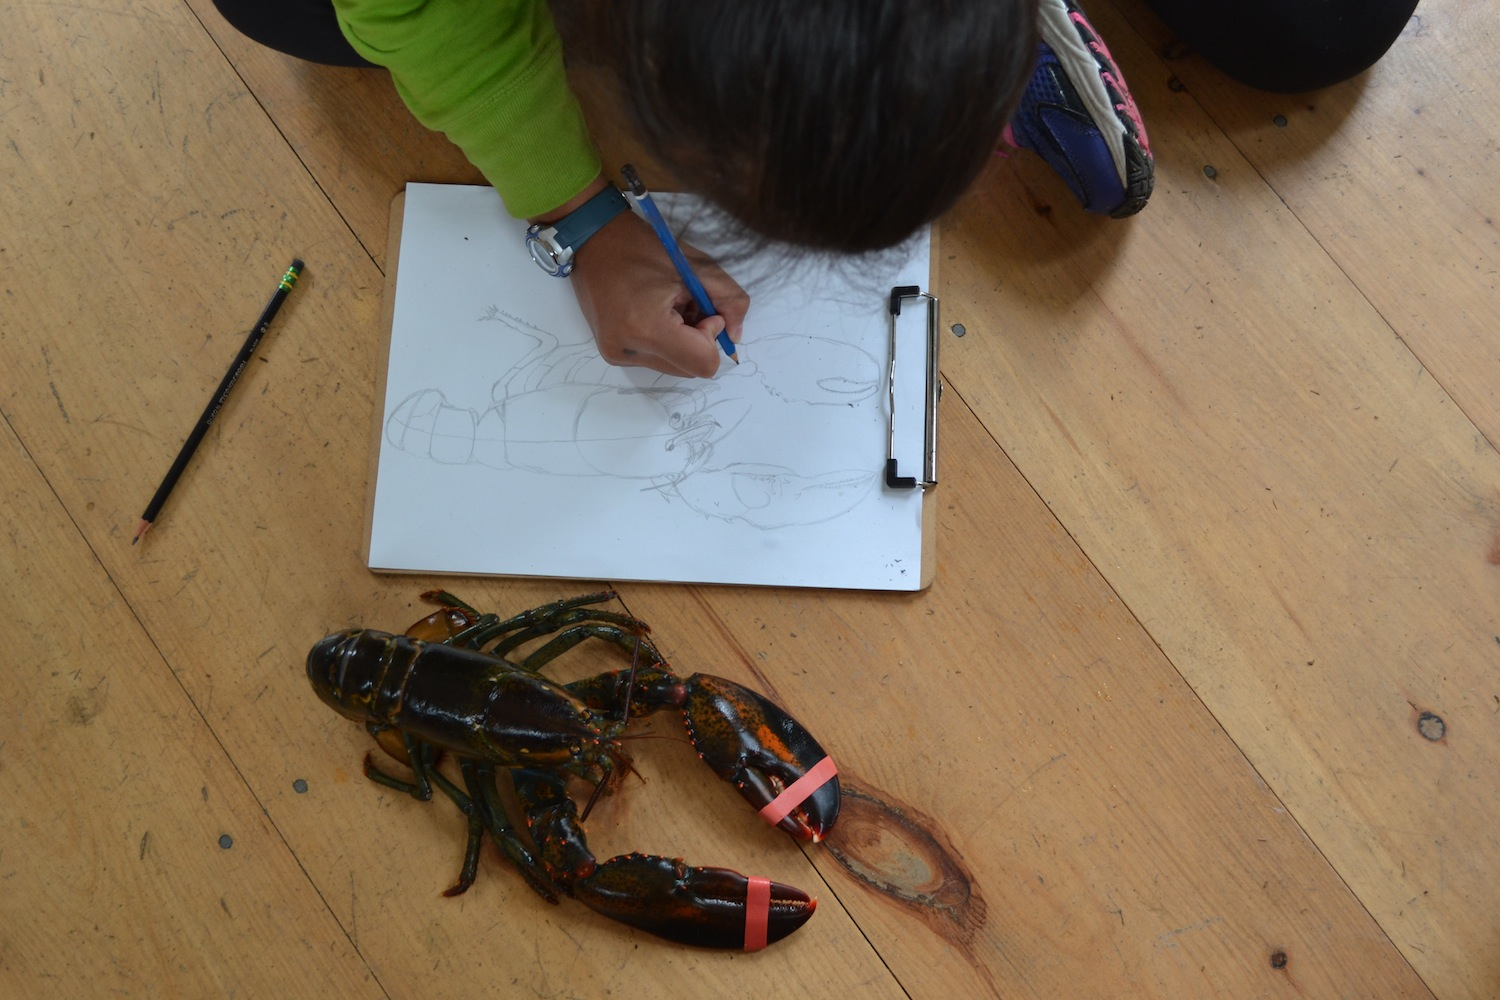 Learning about lobsters by drawing them!